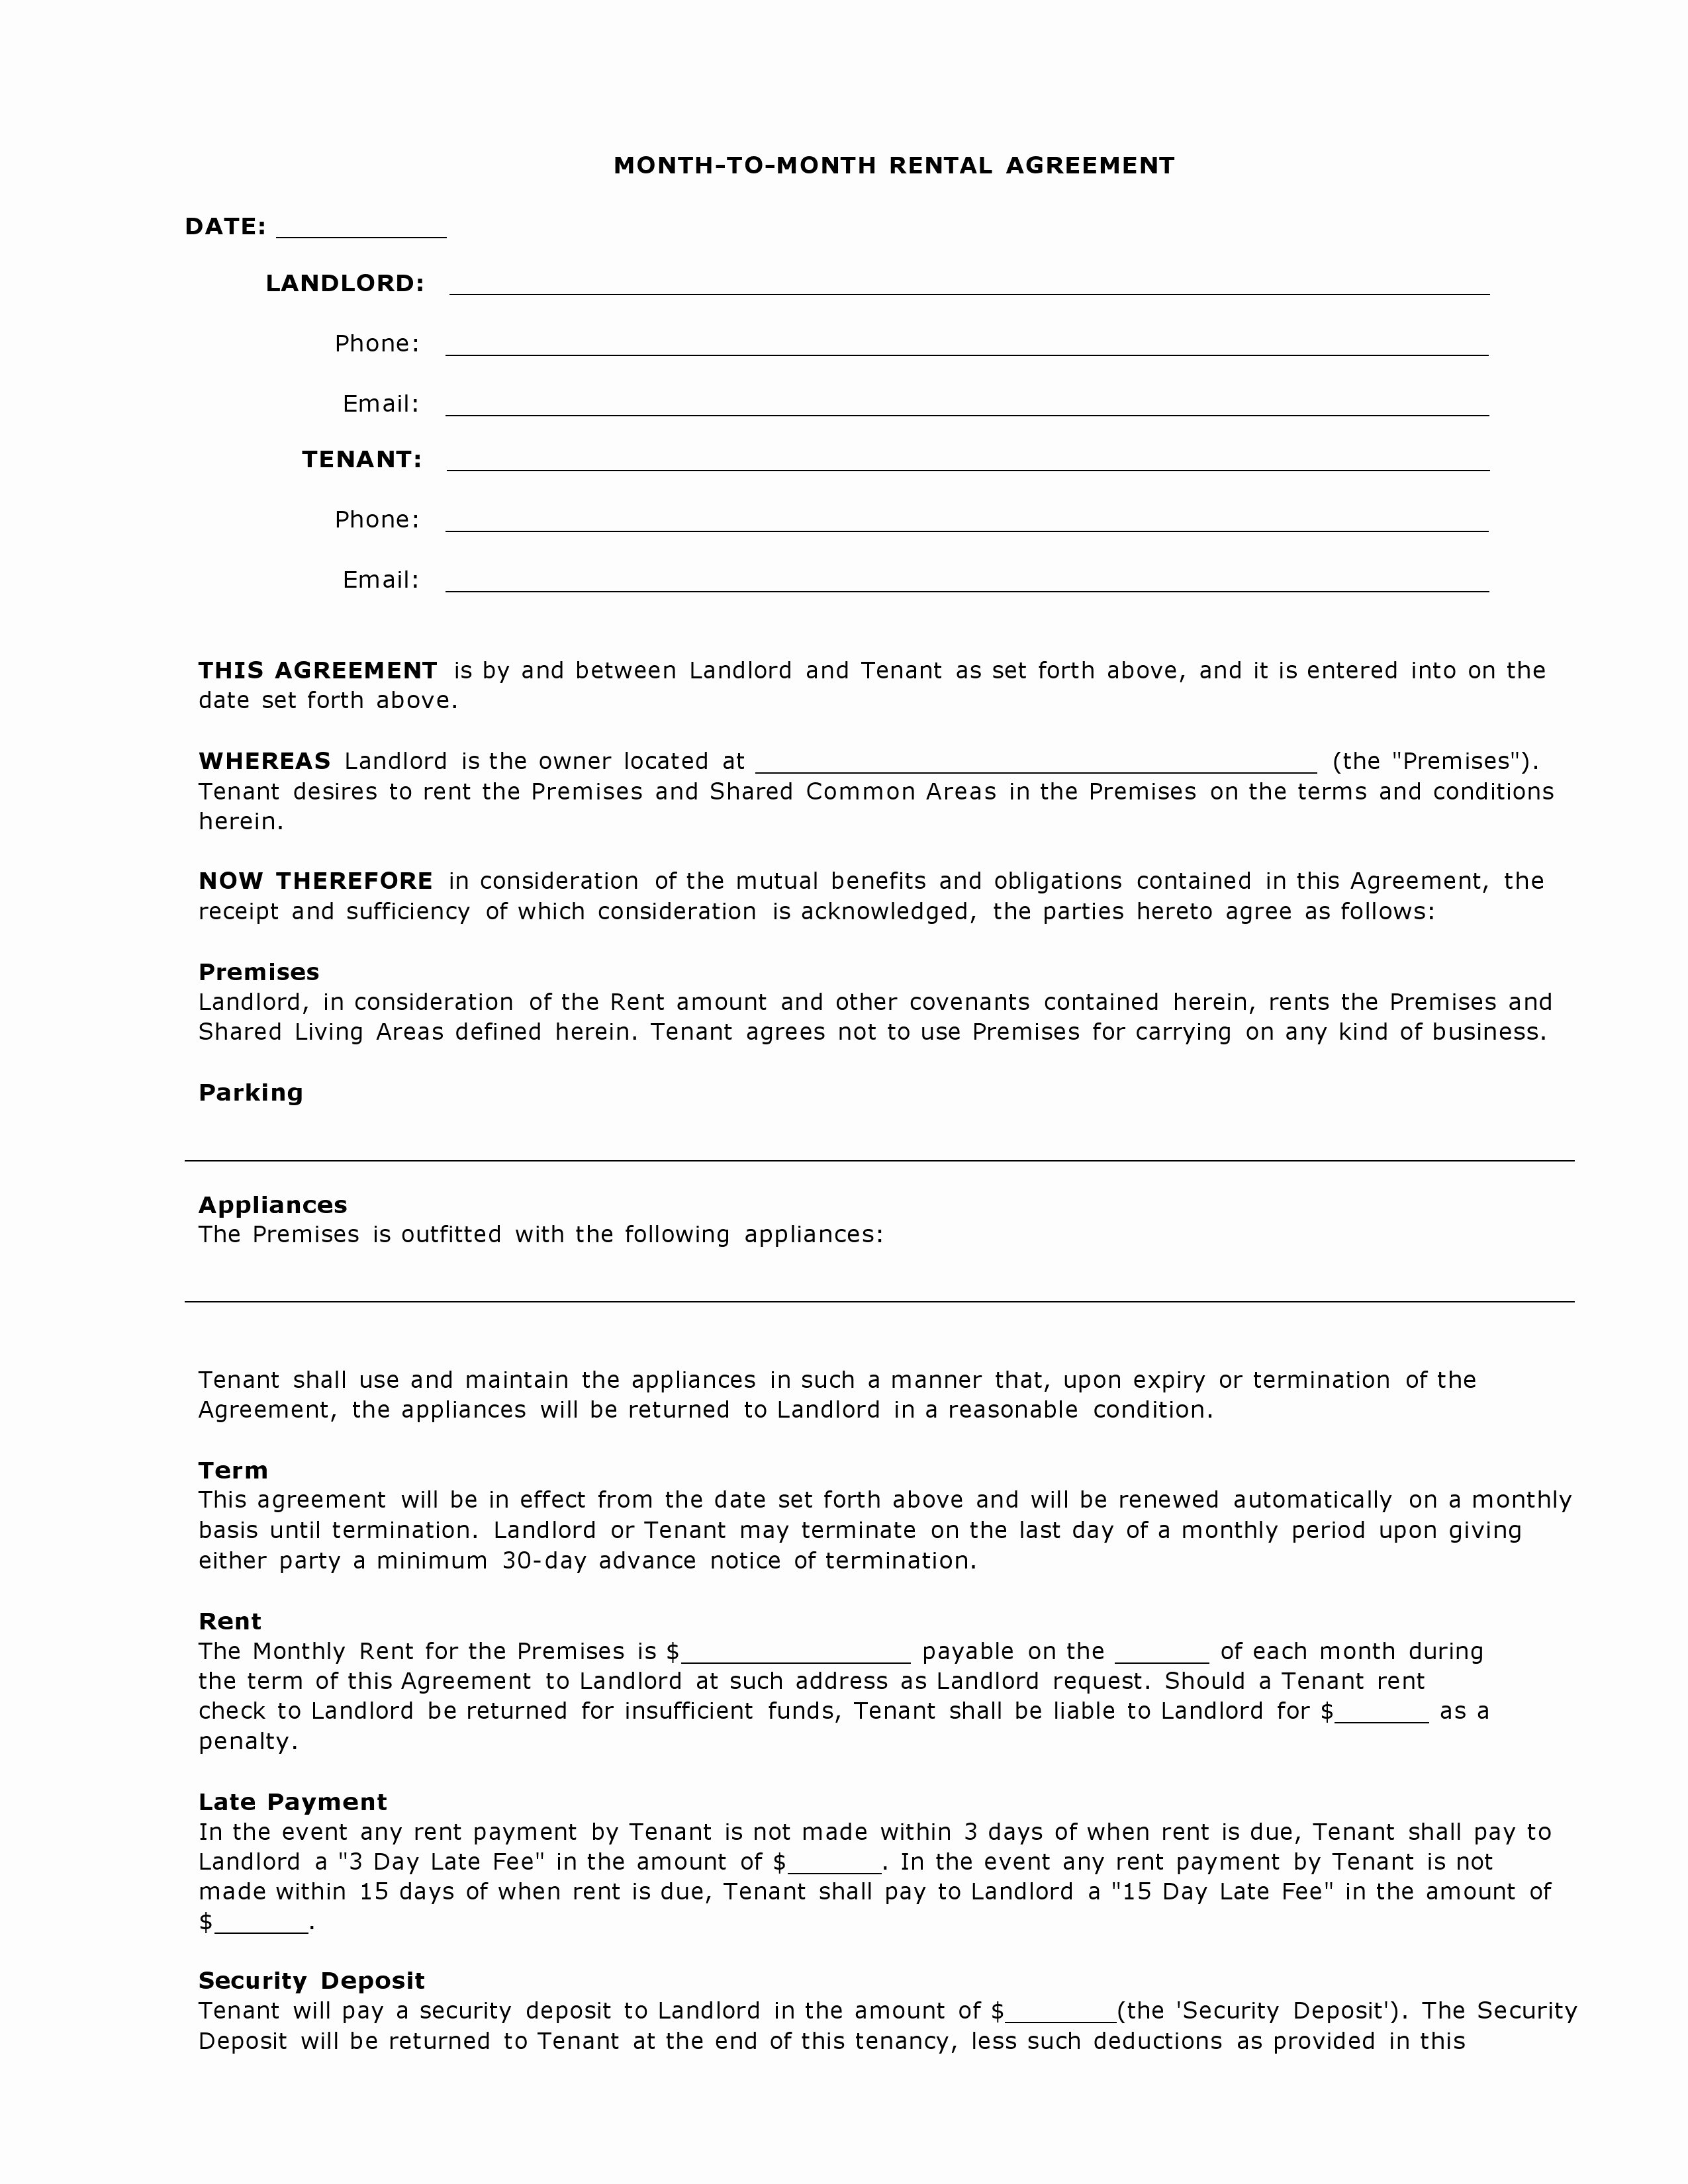 Free Rental Agreement Generic Template Awesome Collection